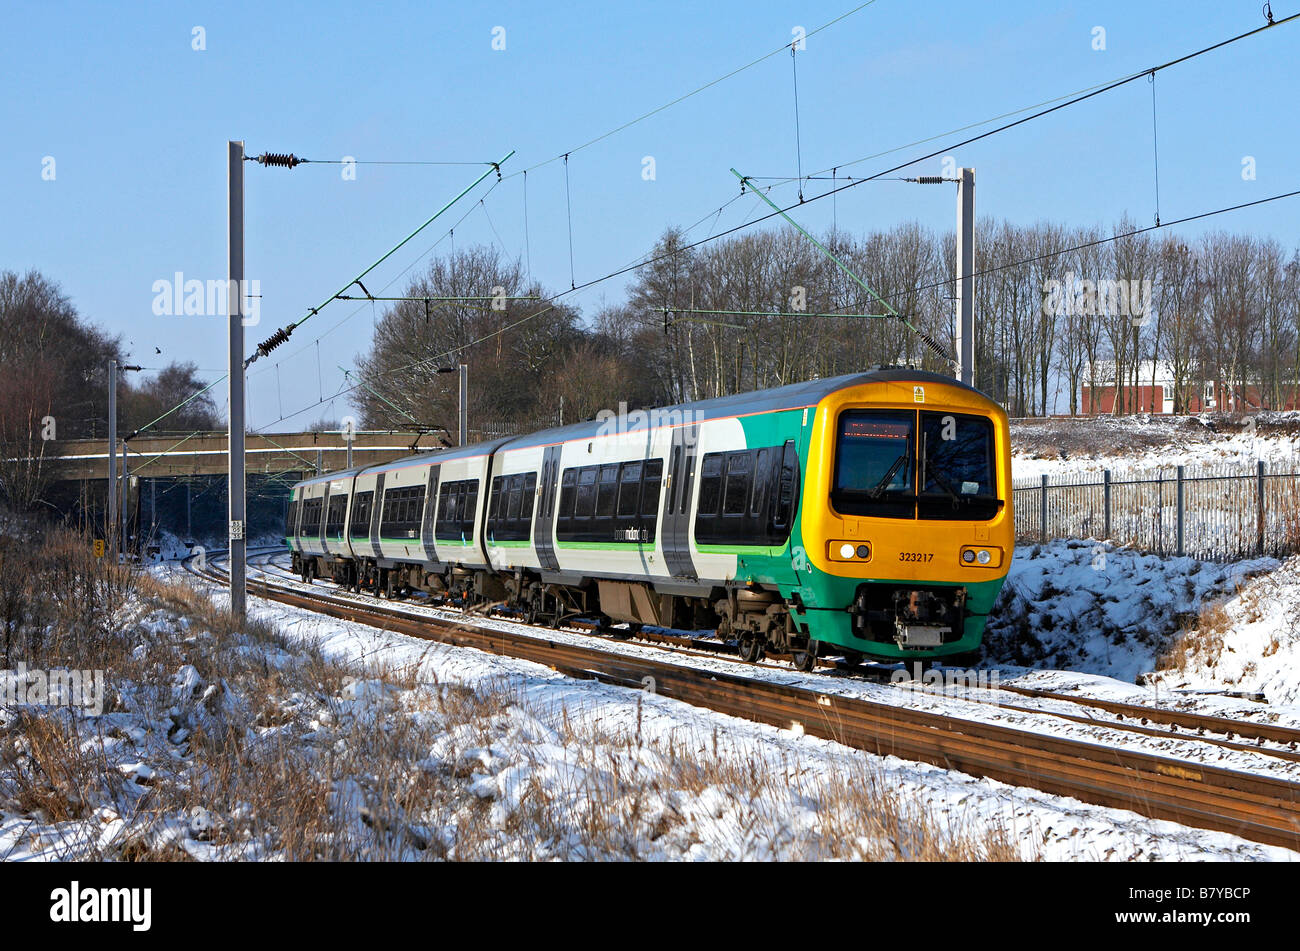 London Midland 323 217 passes through Sandwell Valley Park with the 10 13 Walsall Birmingham New Street service - Stock Image